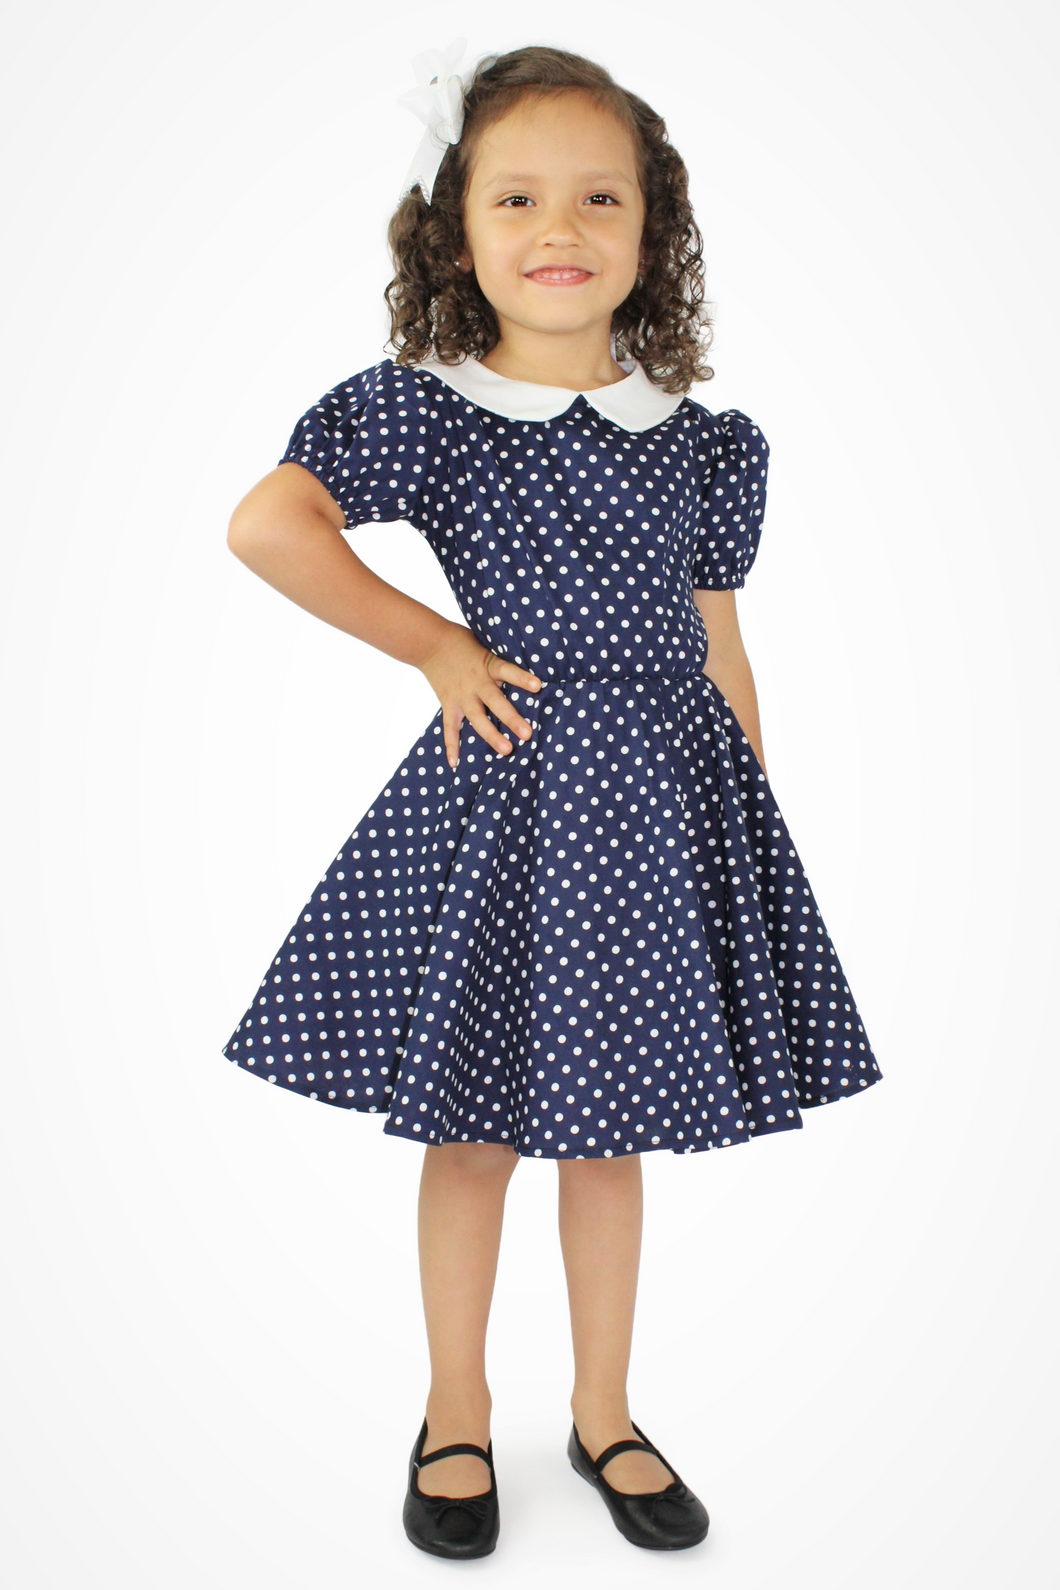 Girl's Blue and White Polka Dot Dress / I Love Lucy Inspired Dress #BWGD